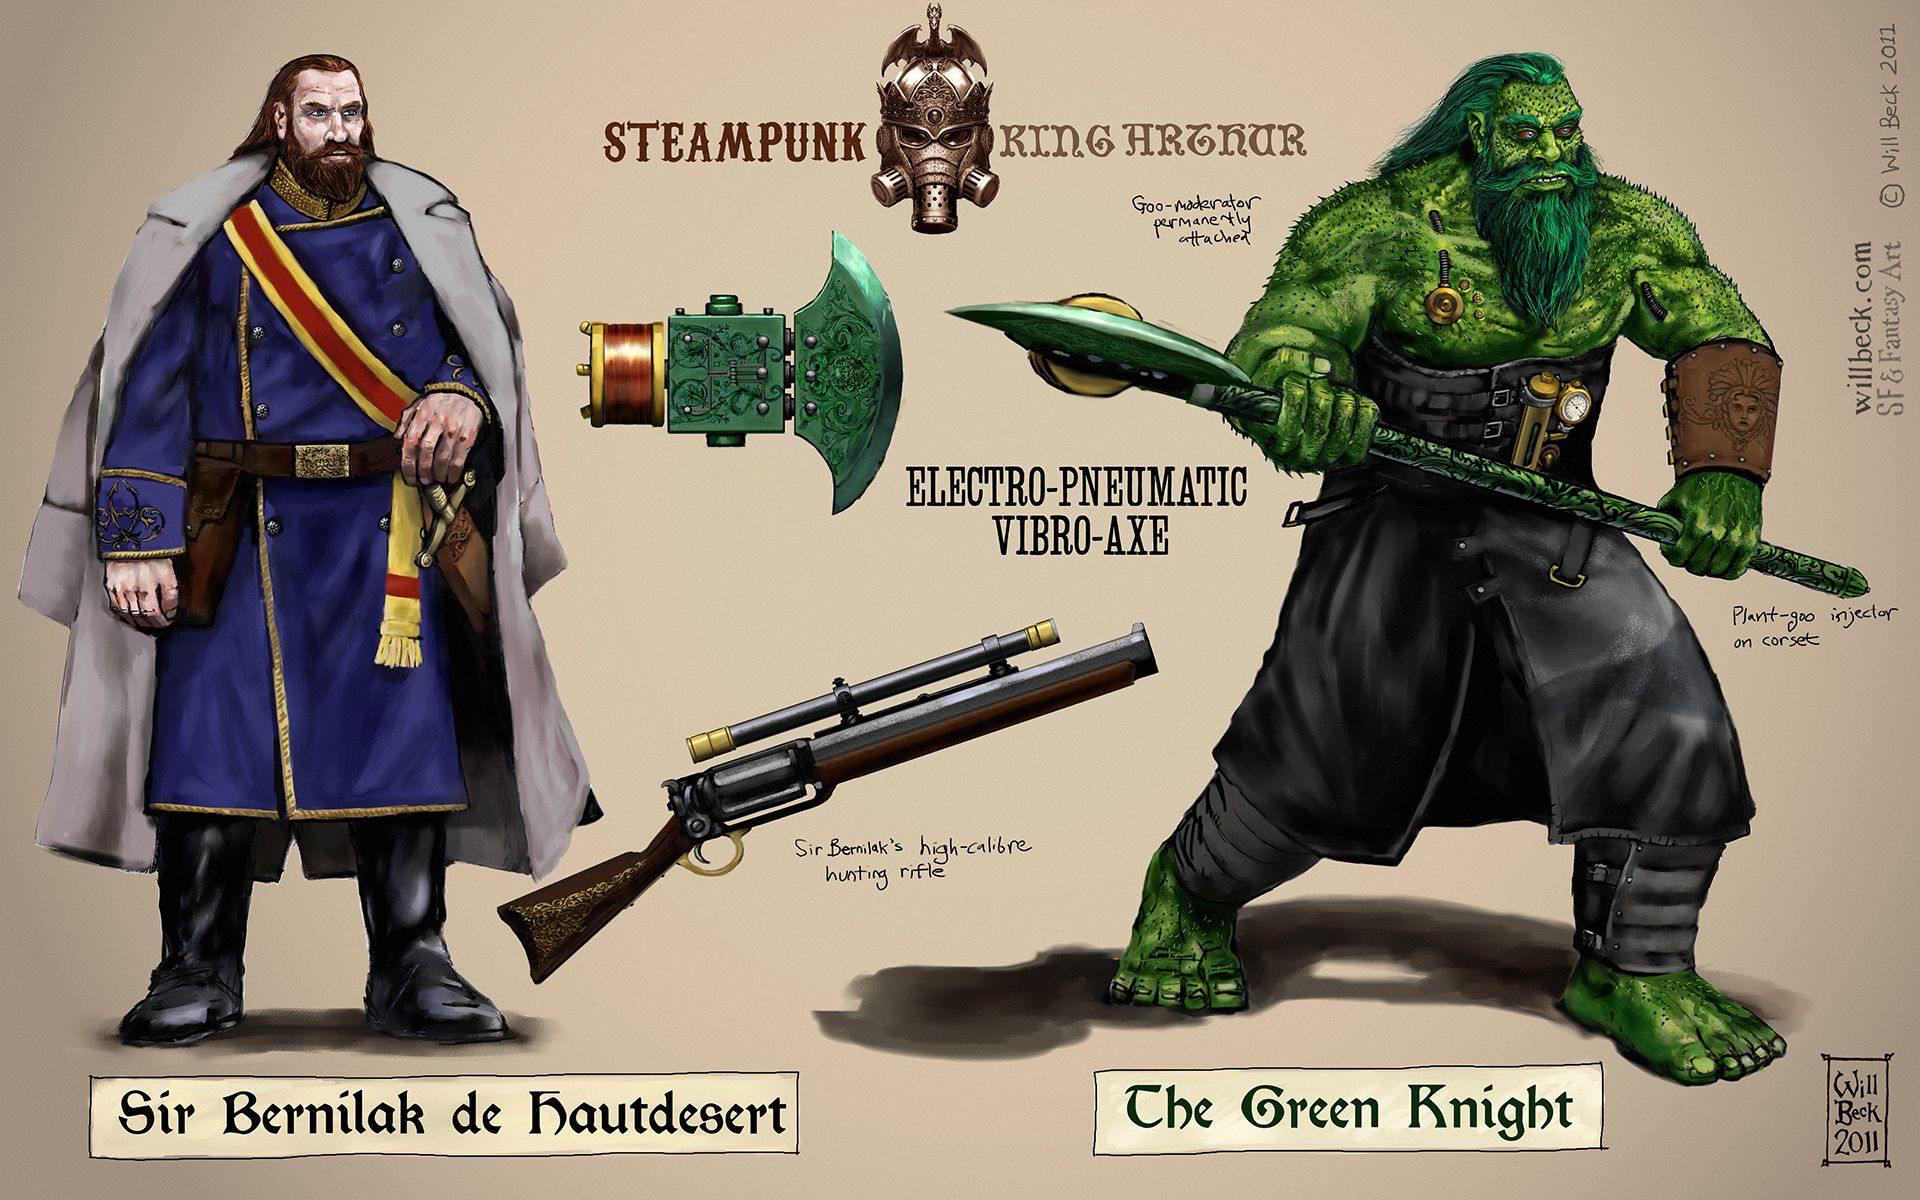 Steampunk Green Knight